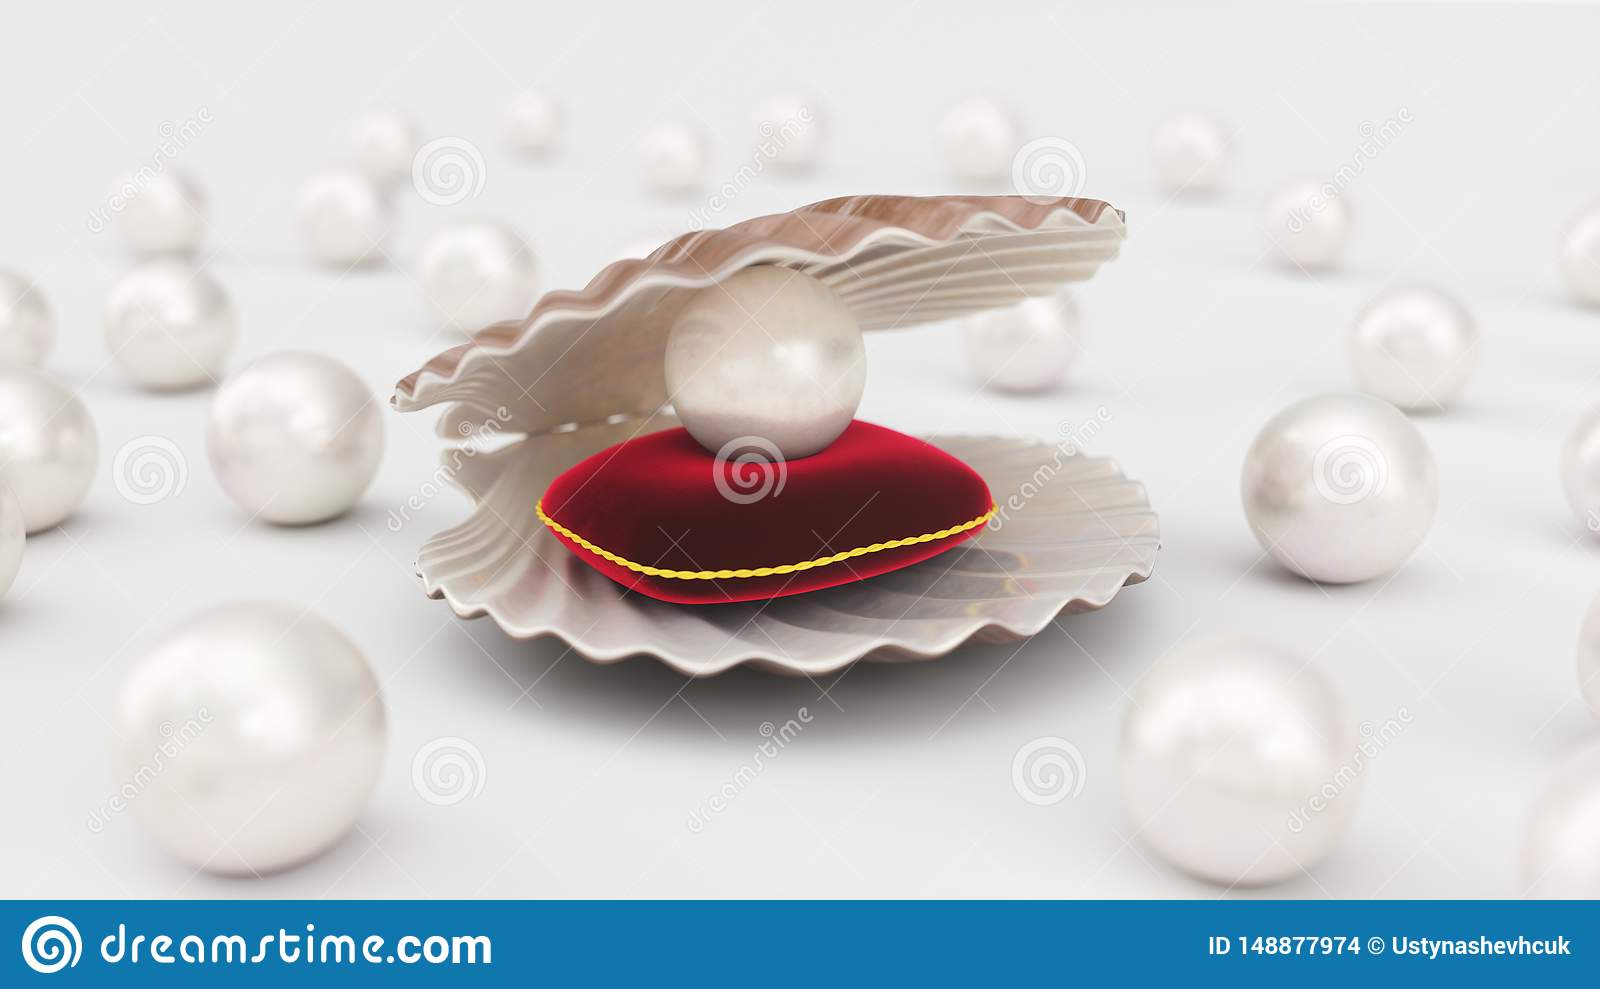 Pillow With Beads Inside.Seashell With Pearls Inside On Red Velvet Pillow Gems